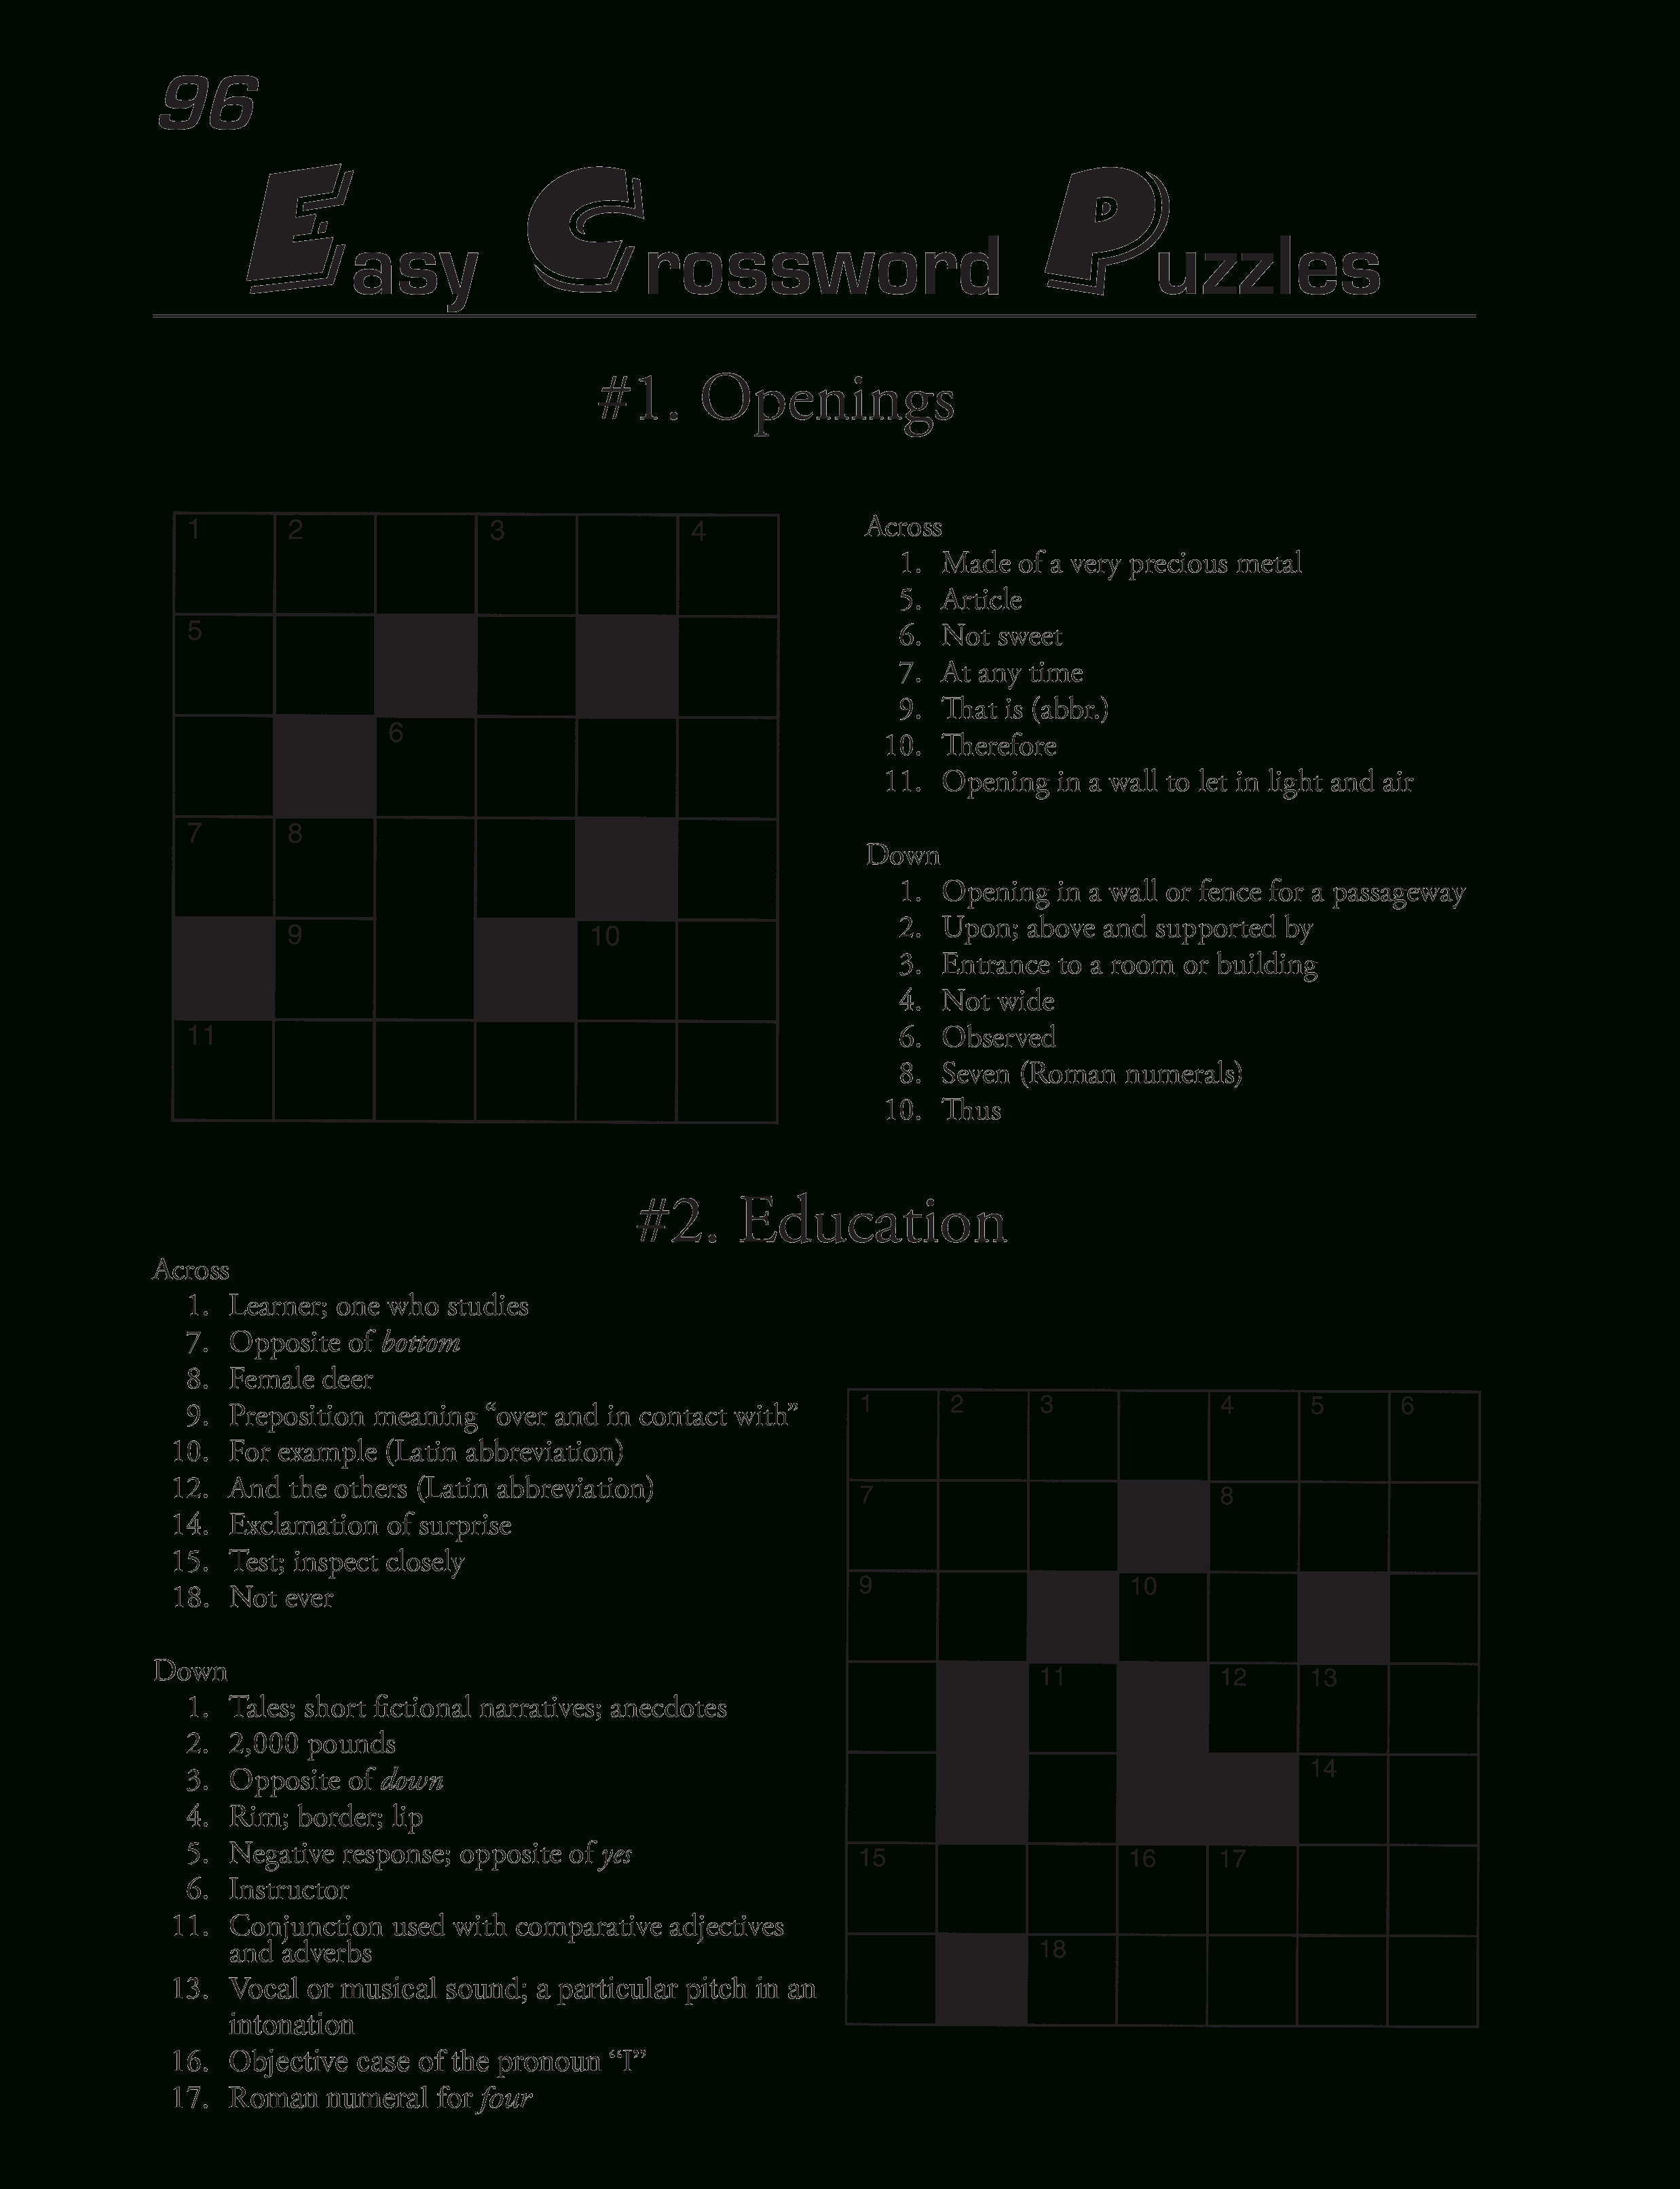 Printable Crossword Puzzles Template   Templates At - Printable Blank Crossword